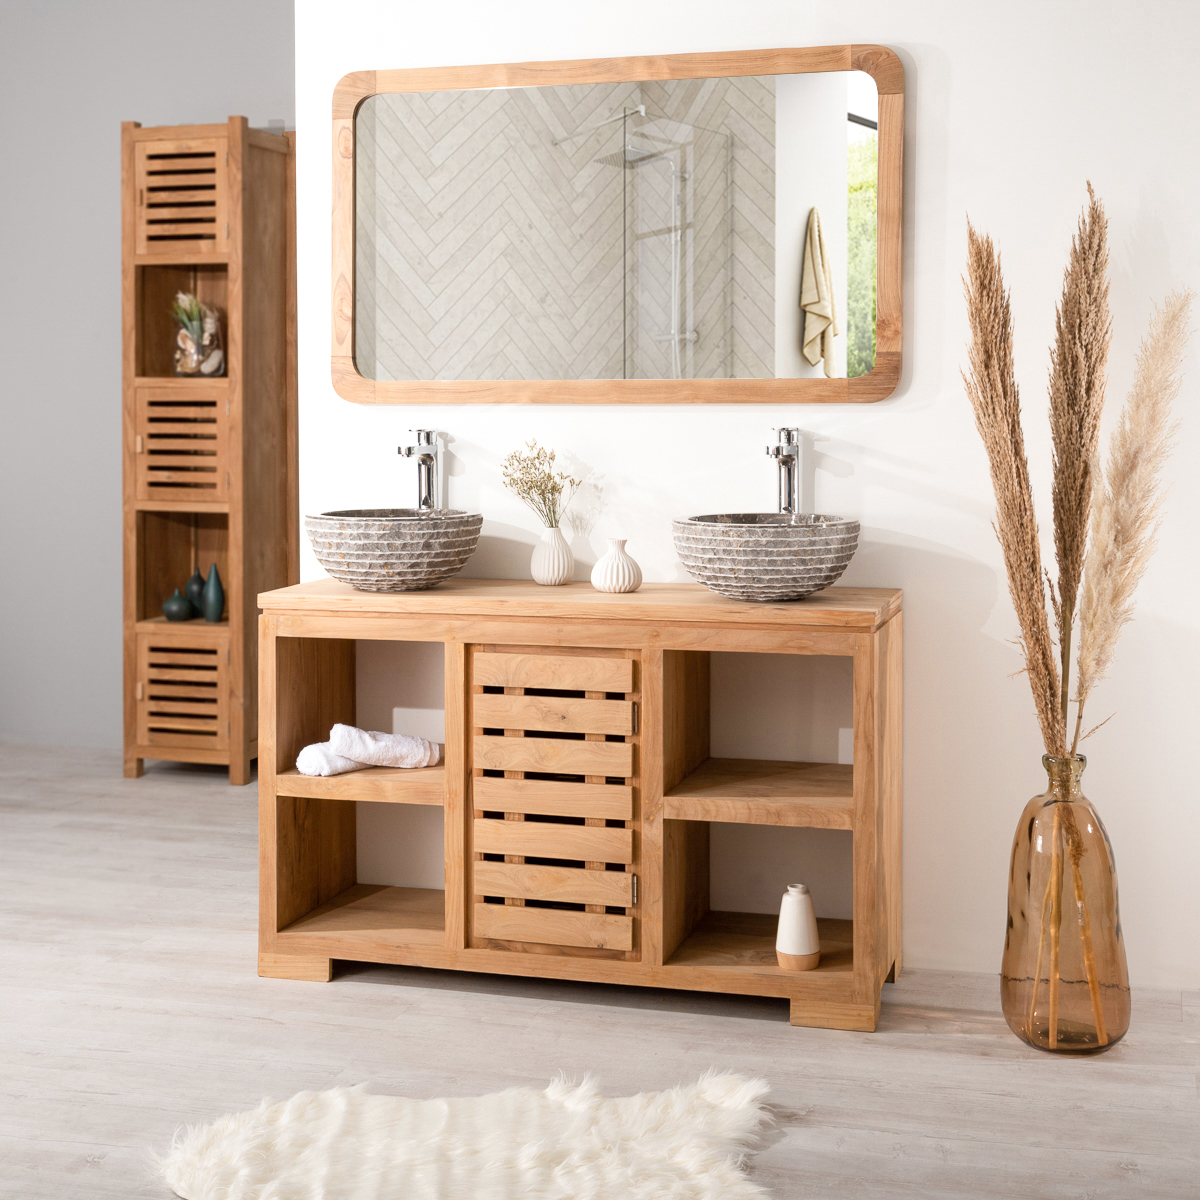 meuble salle de bain en teck massif 120 cm. Black Bedroom Furniture Sets. Home Design Ideas